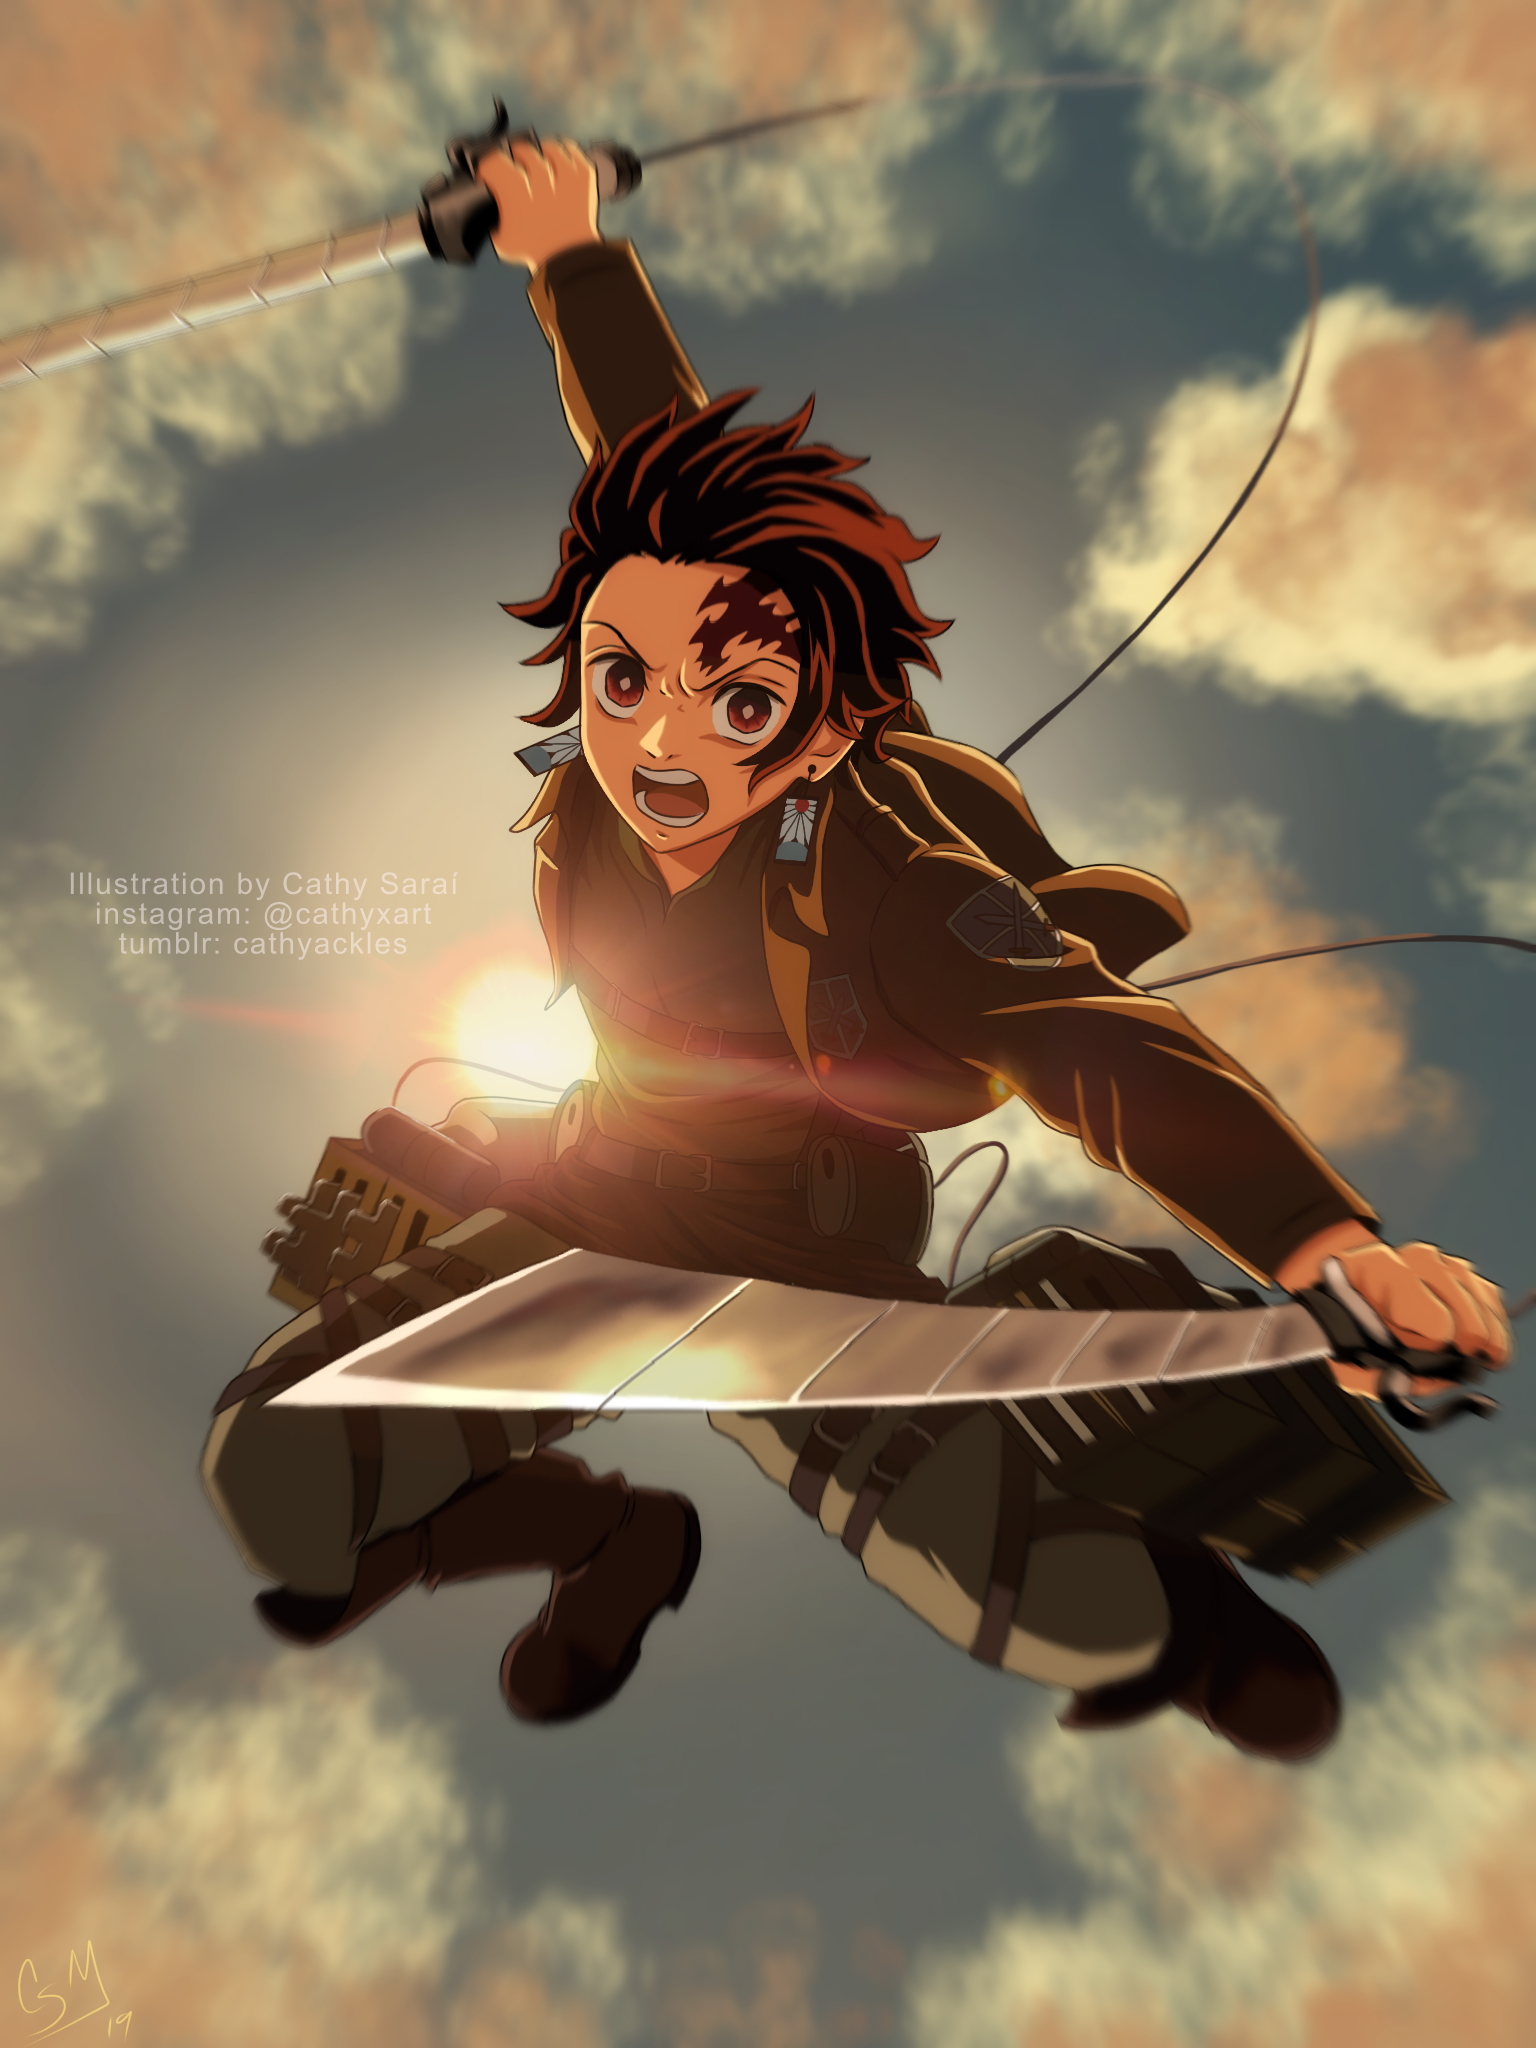 Tanjiro in the Attack on Titan world! Take this as a